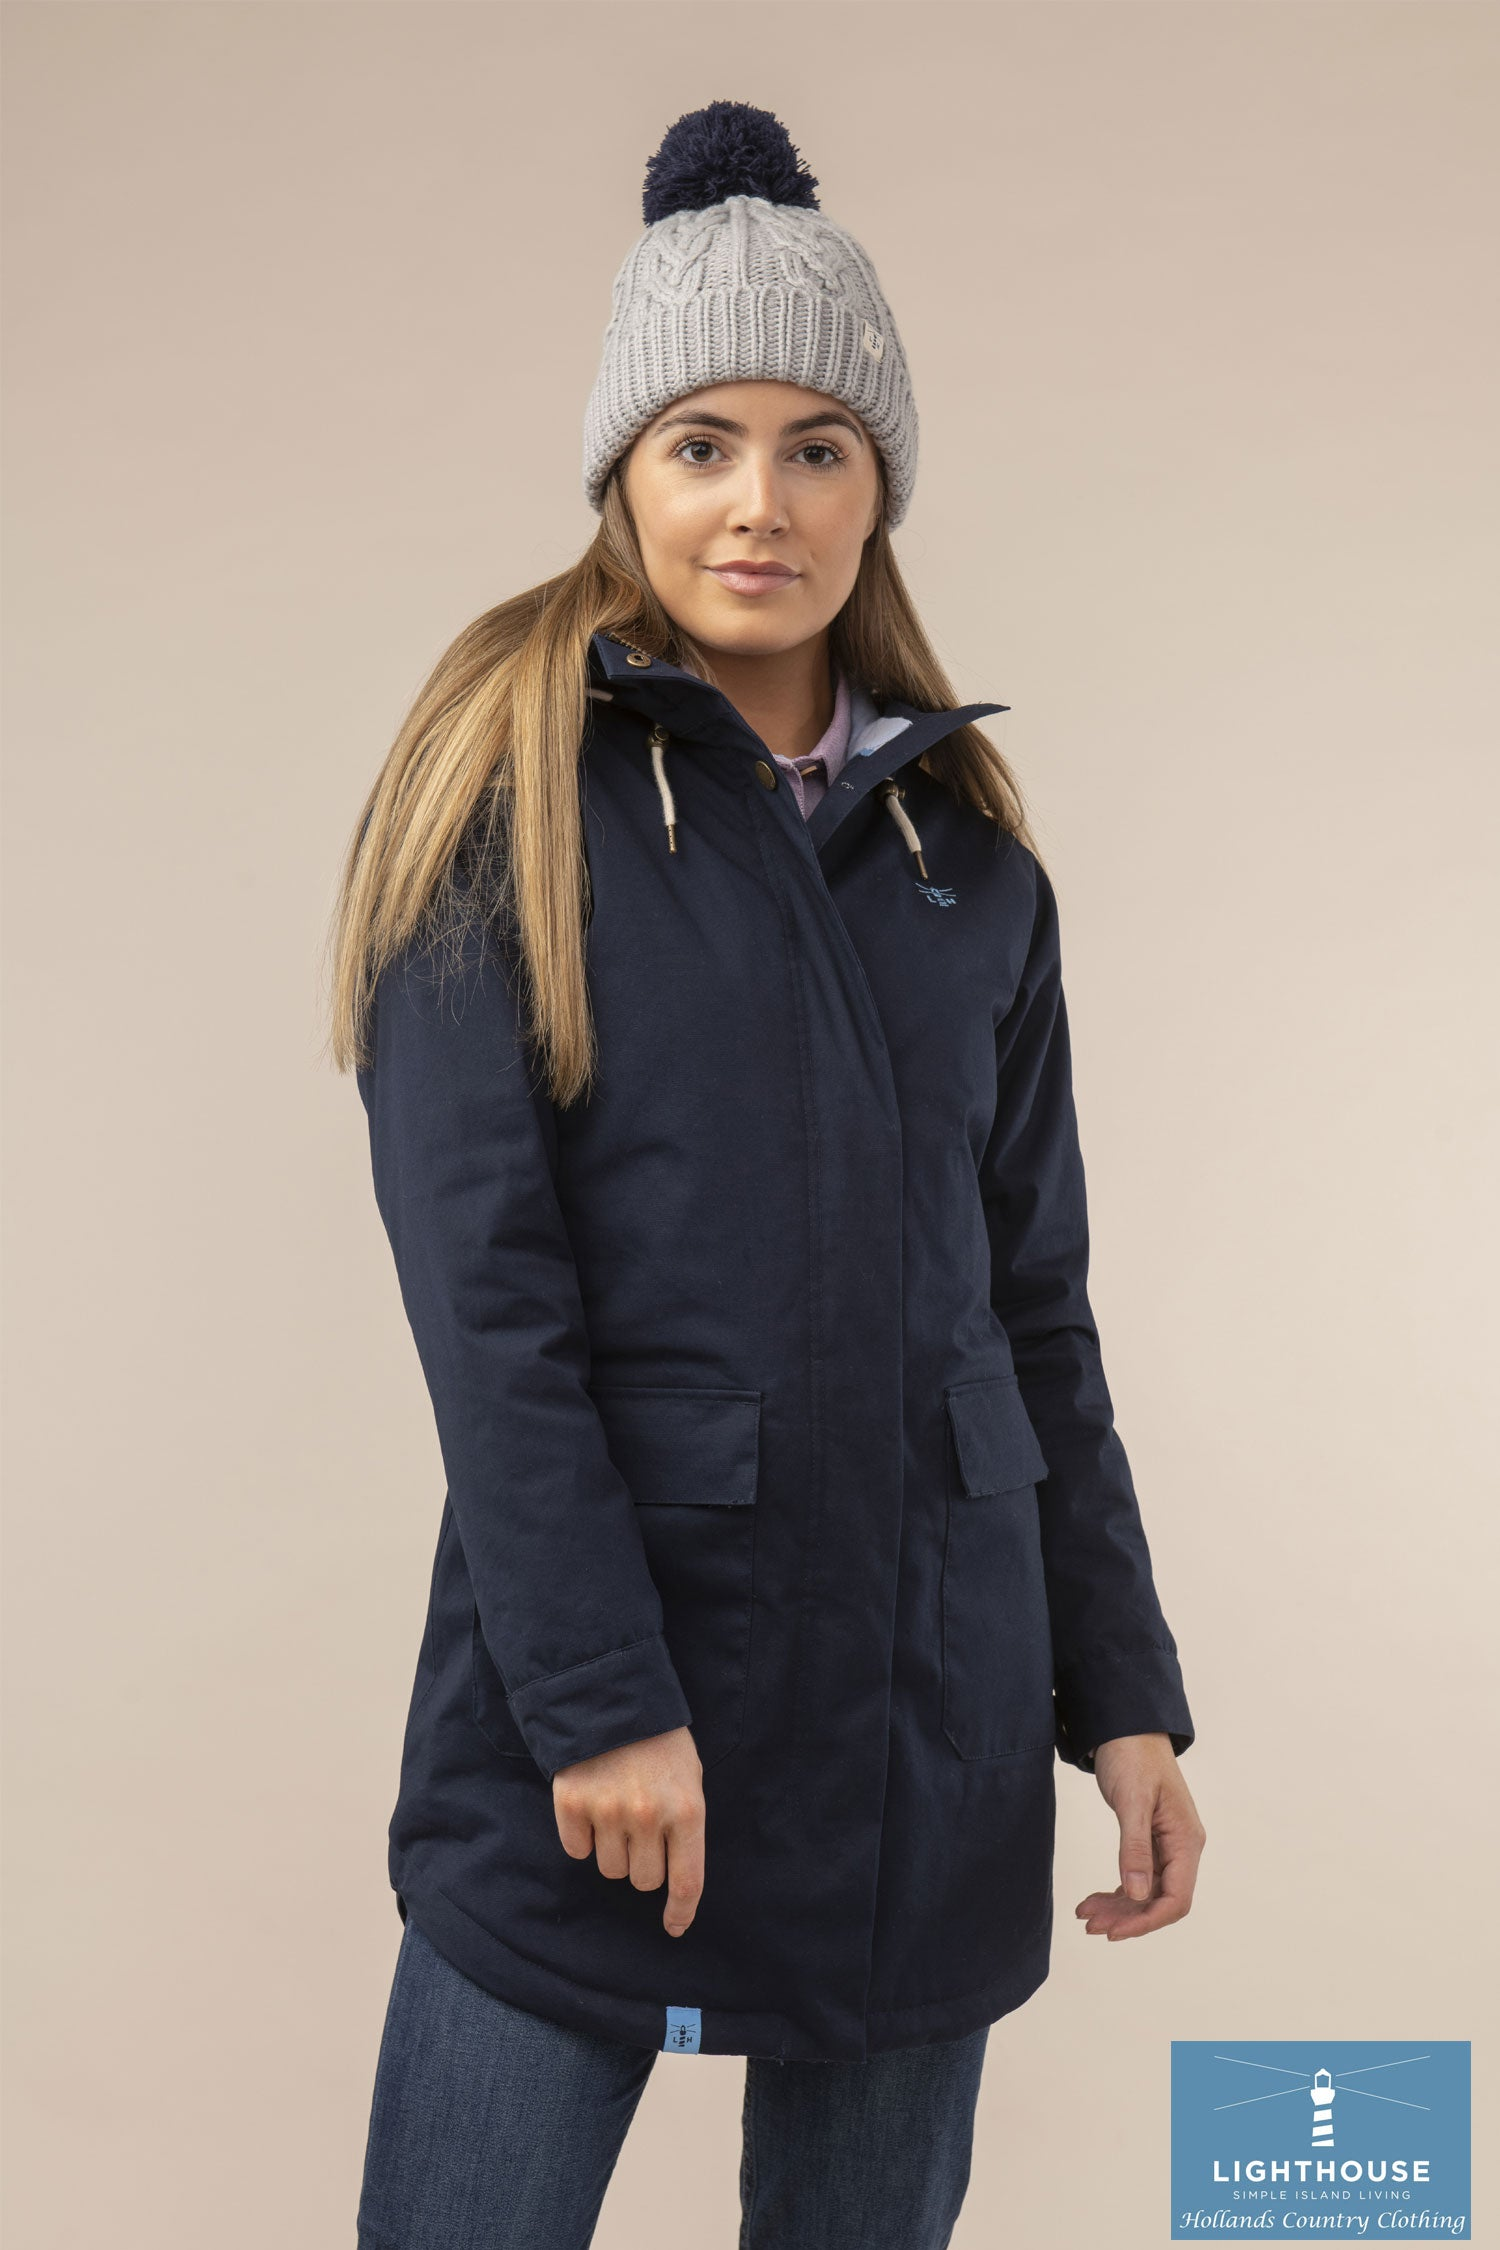 Worn with bobble hat